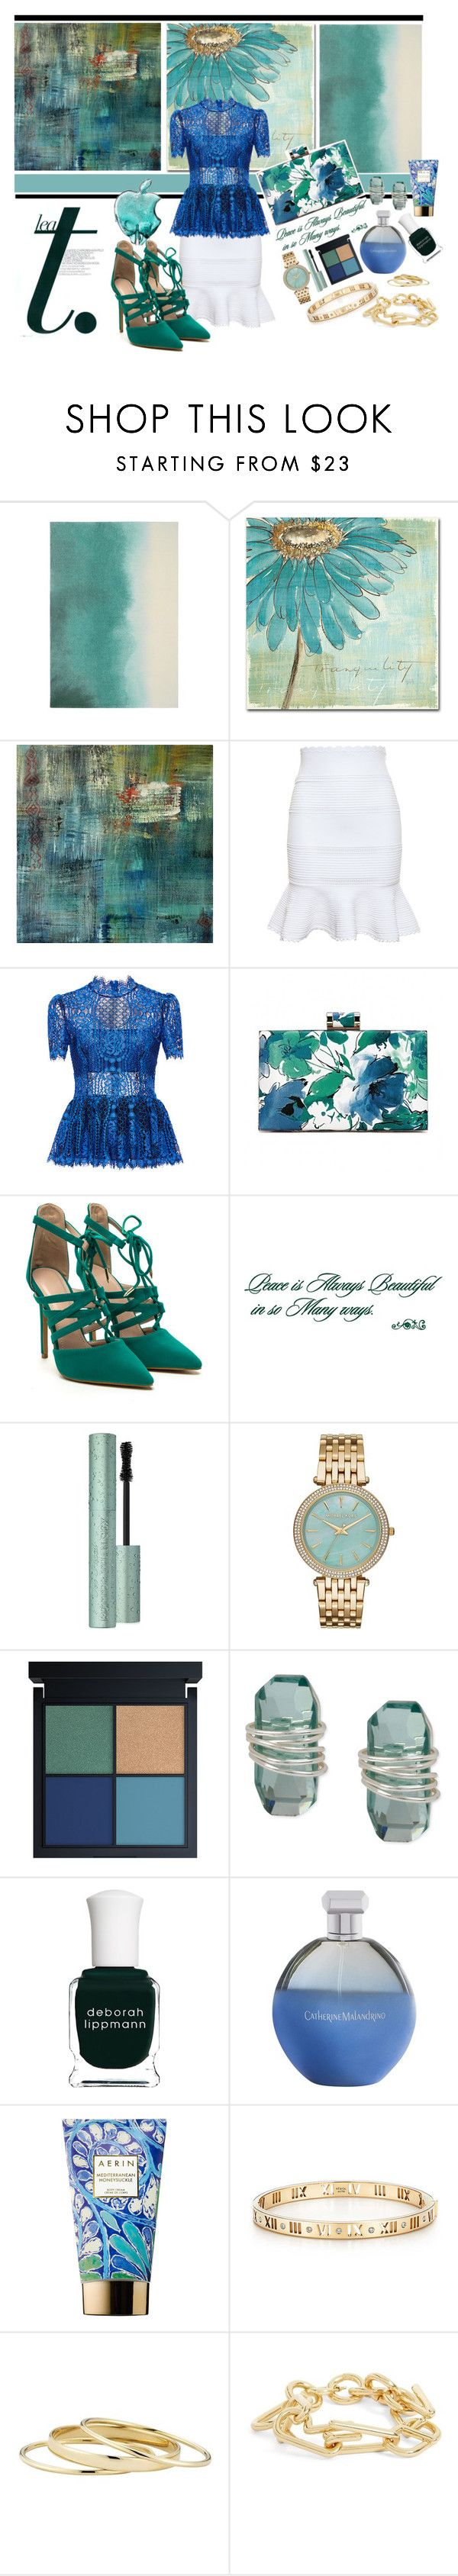 """Lace and Lollipops"" by bettyboopbbw69 ❤ liked on Polyvore featuring Unitex International, Trademark Fine Art, NOVICA, Alexander McQueen, Alexis, Too Faced Cosmetics, Michael Kors, Robert Lee Morris, Deborah Lippmann and Catherine Malandrino"